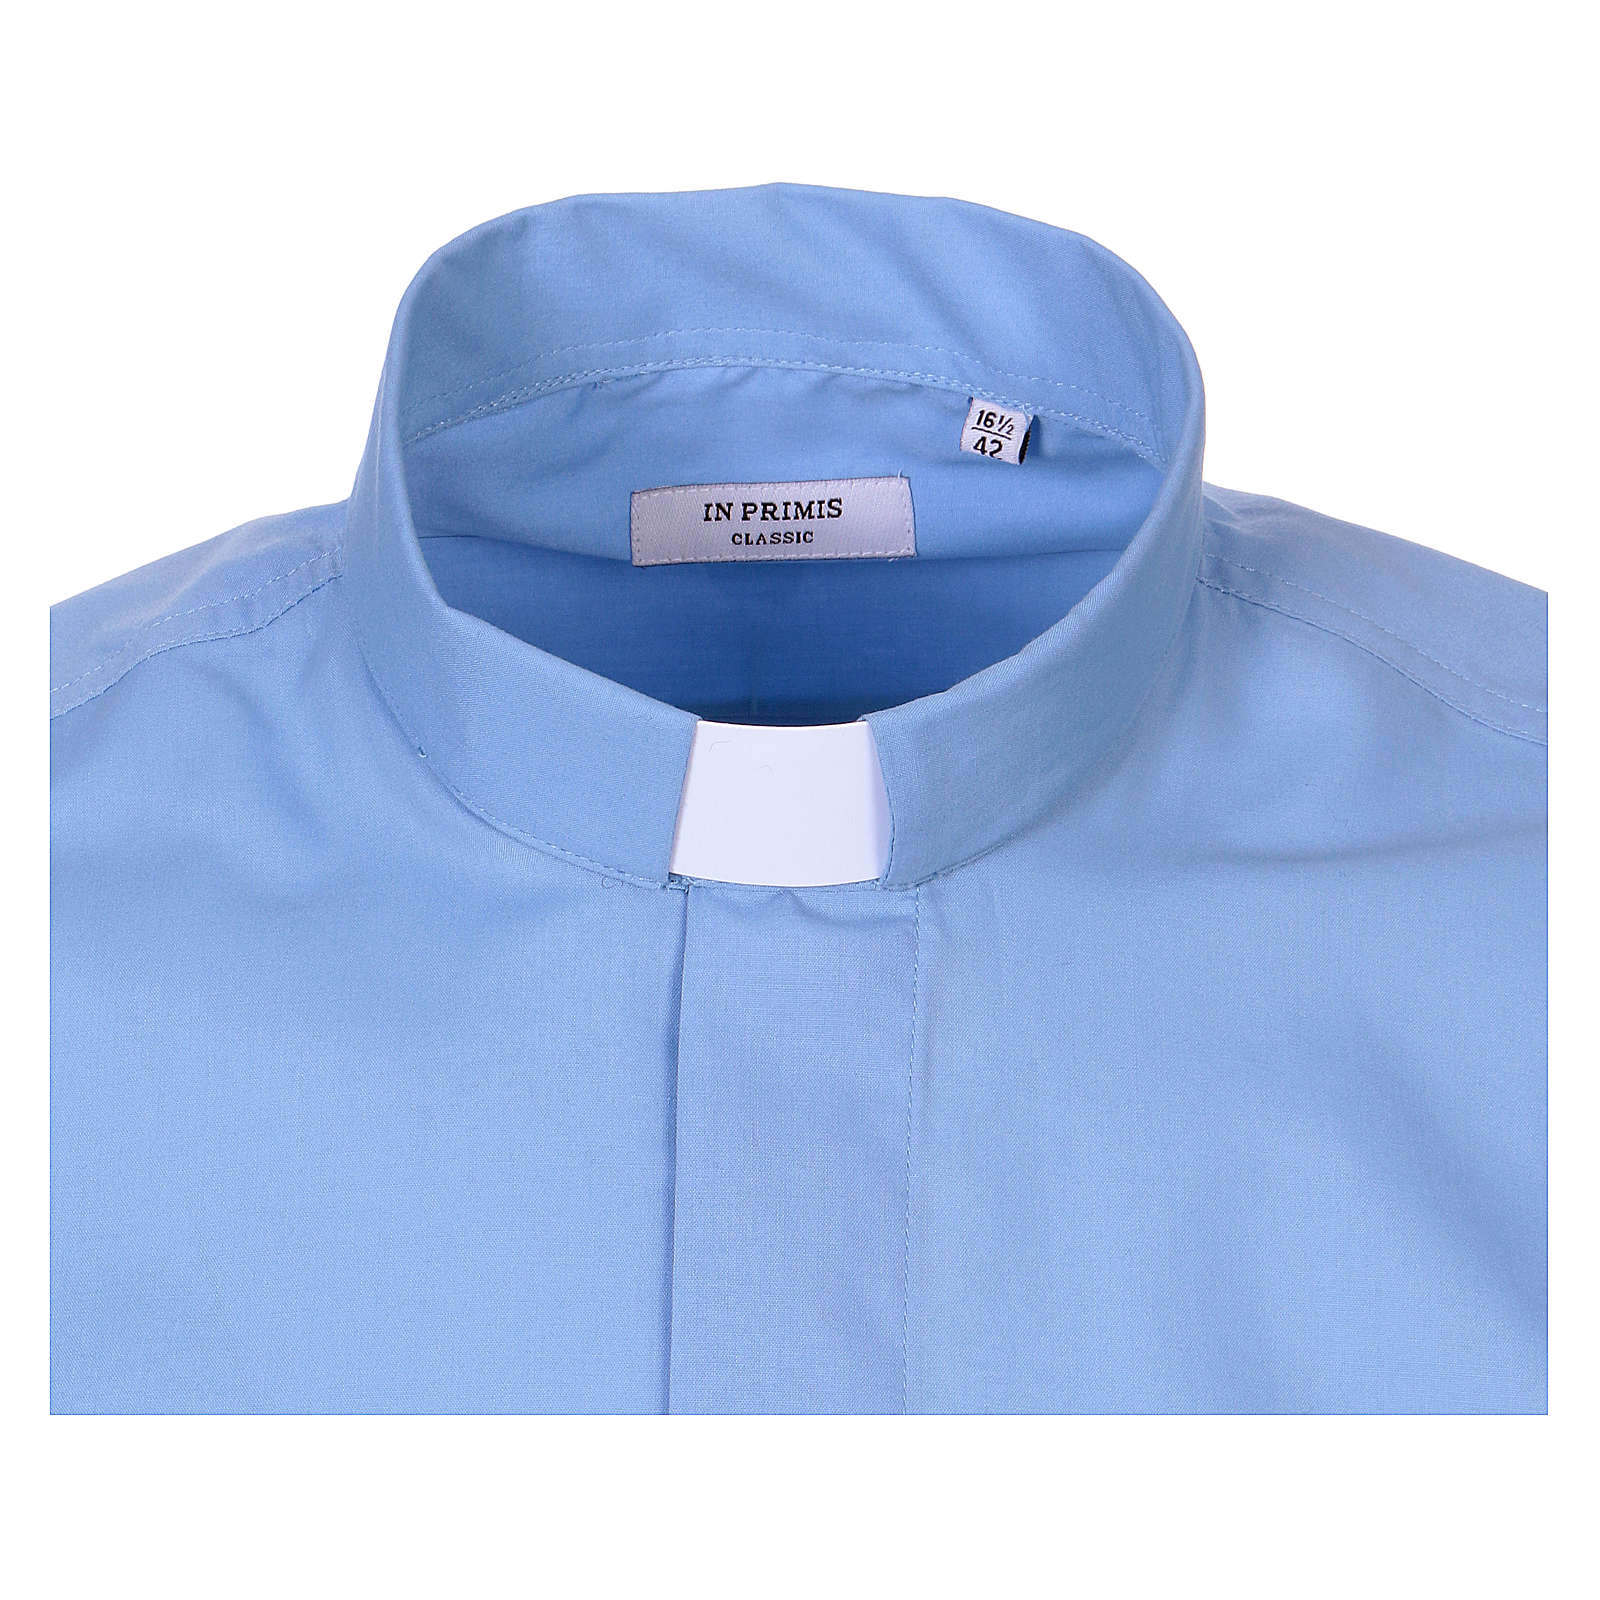 Long-sleeved clergy shirt in sky blue cotton blend 4